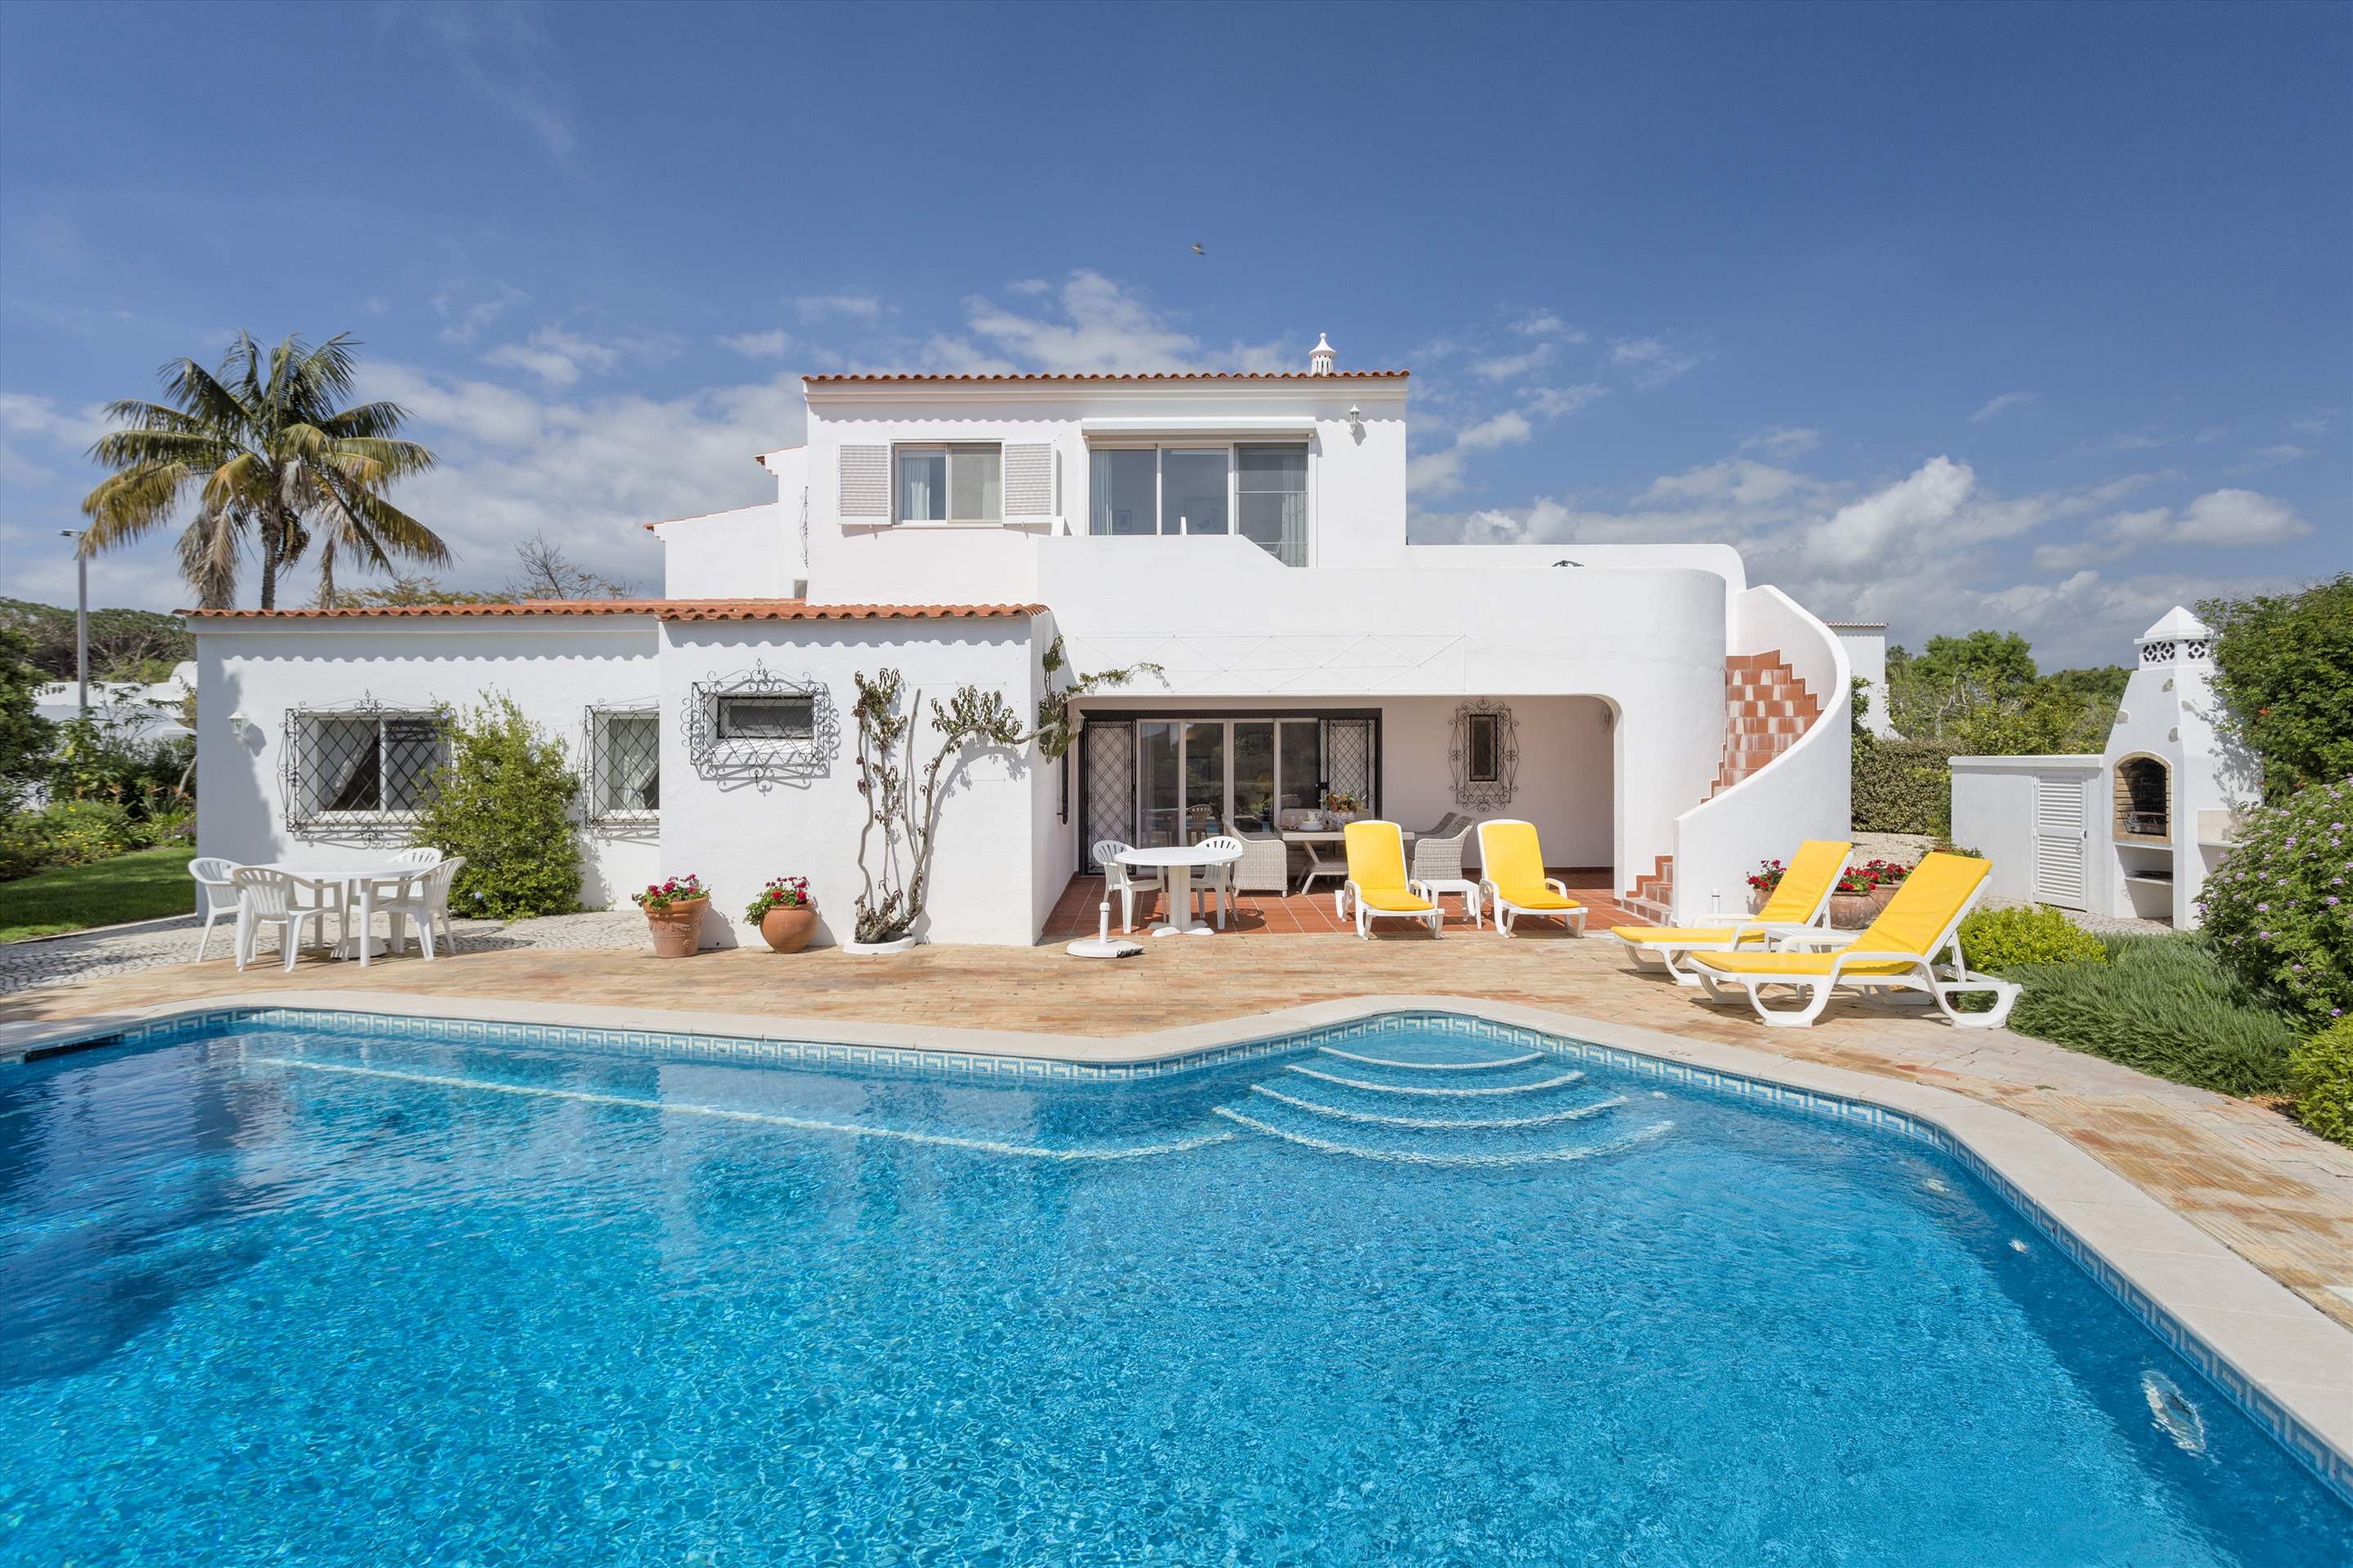 Villa Palmeira, 3 bedroom villa in Vale do Lobo, Algarve Photo #1